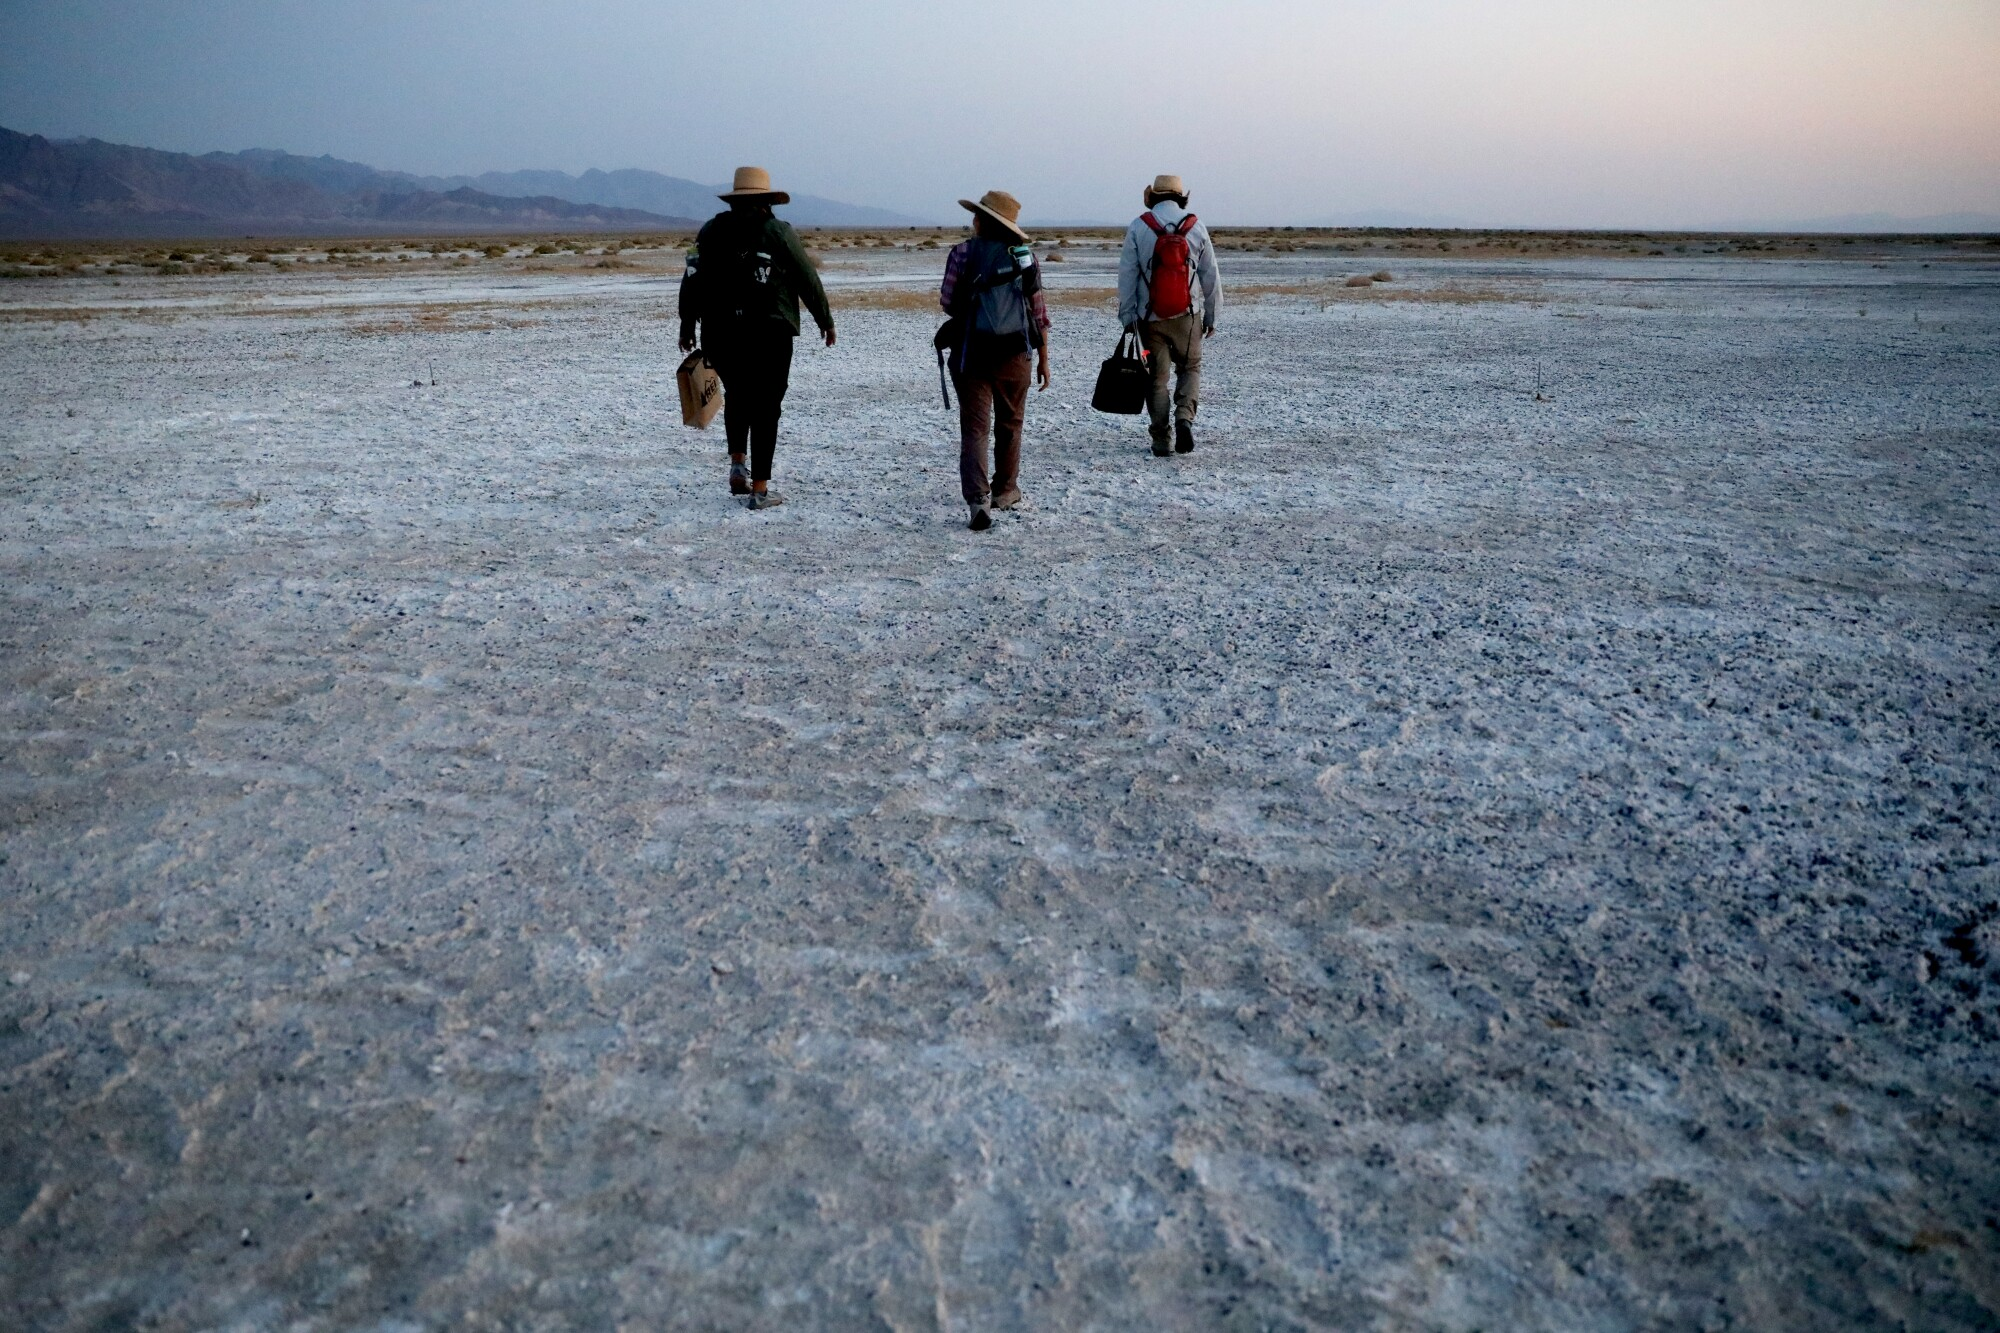 Three people trudge over a craggy desert plain